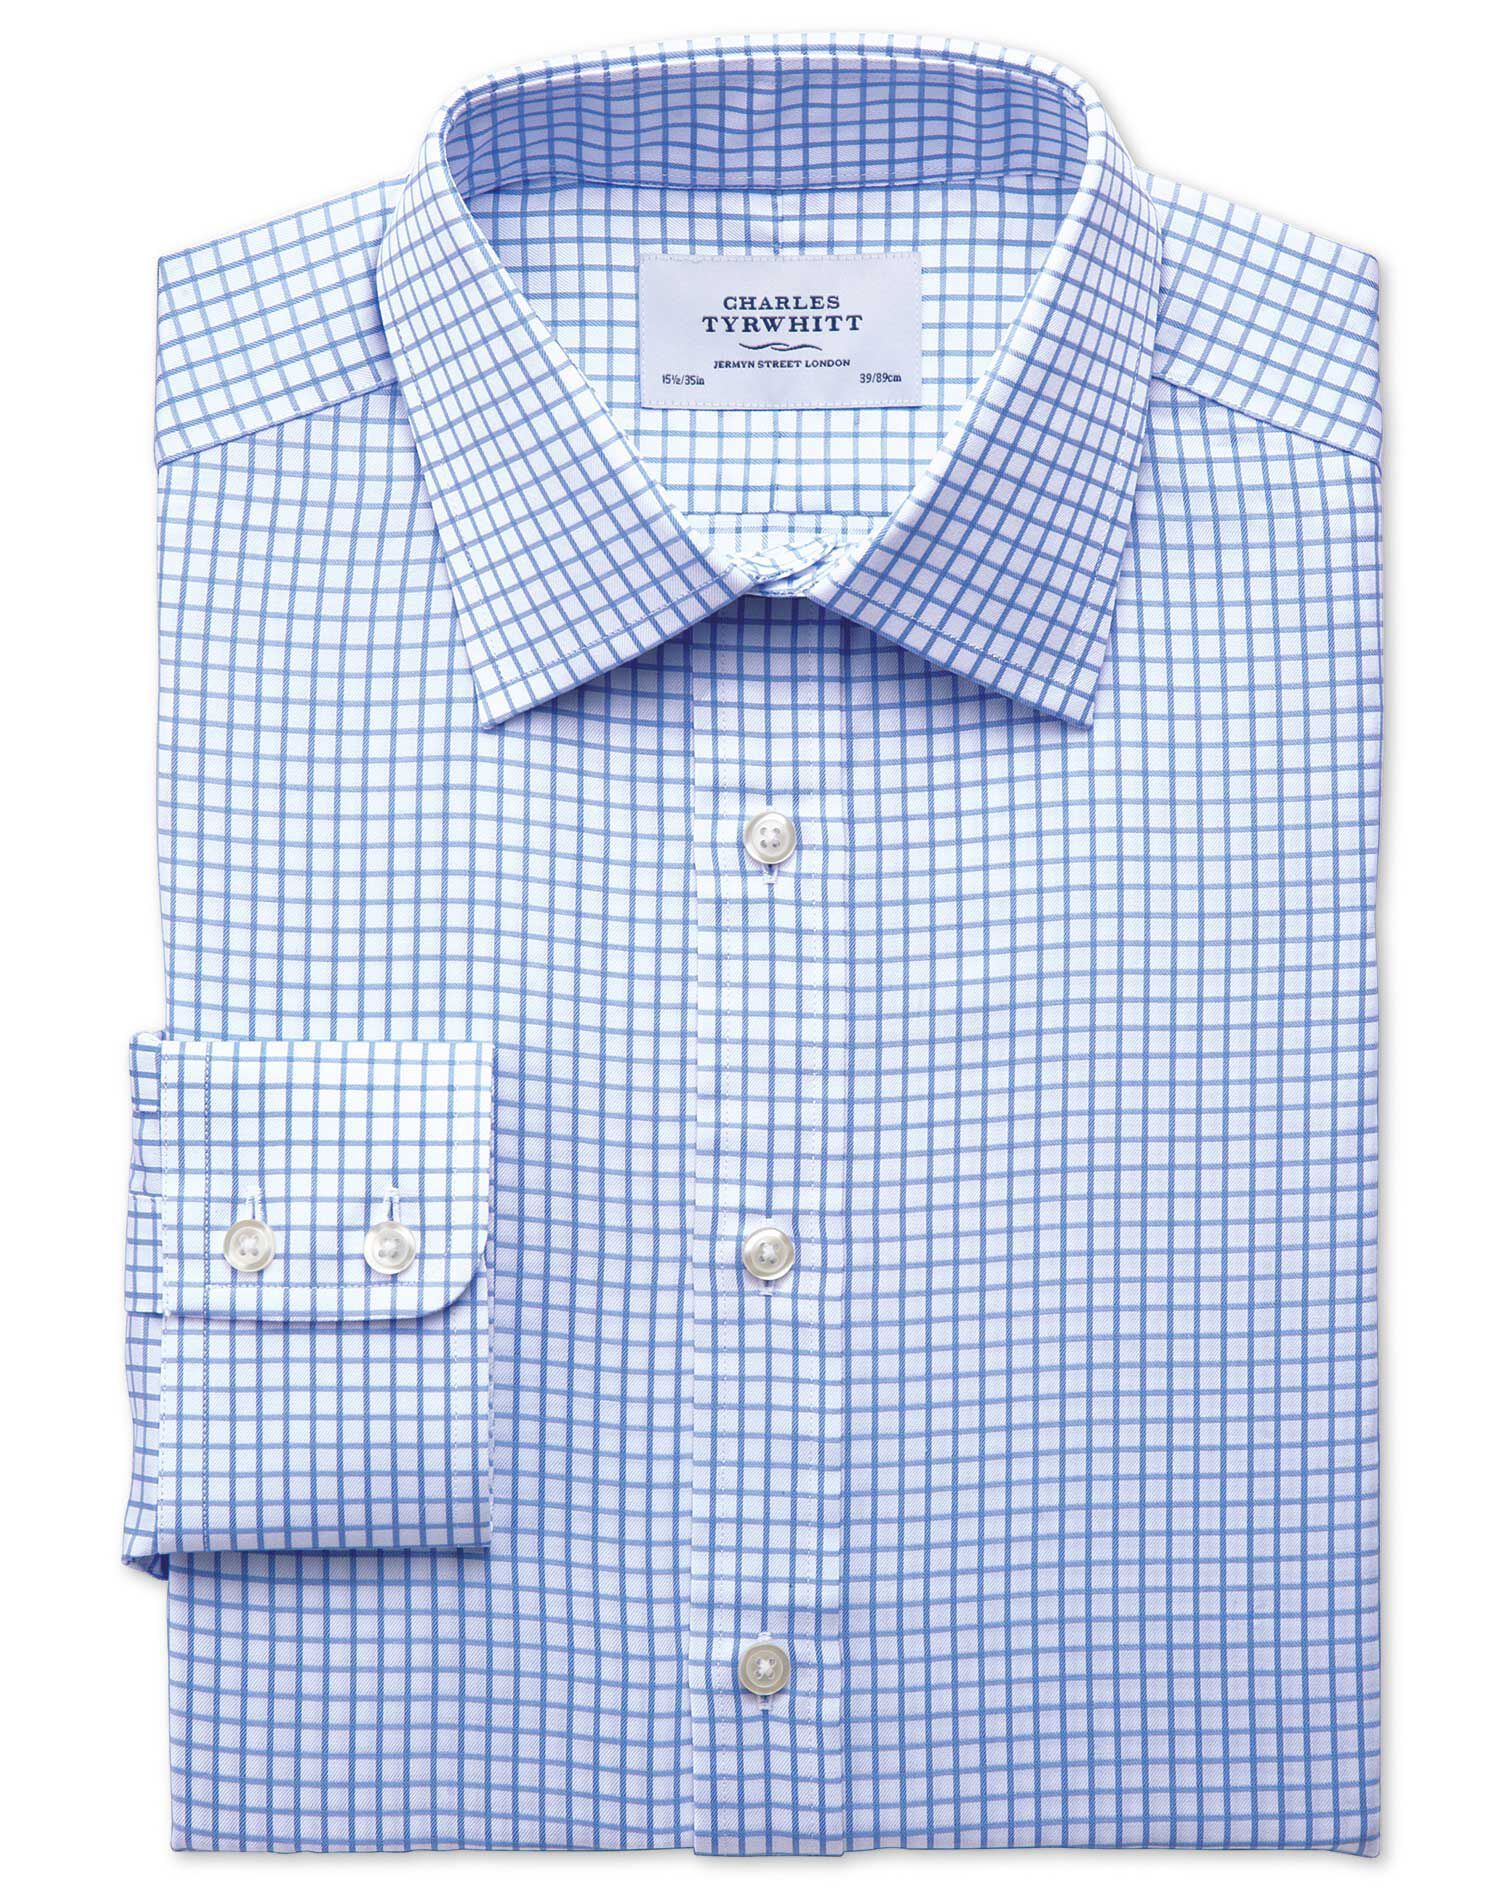 Slim Fit Twill Grid Check Sky Blue Cotton Formal Shirt Single Cuff Size 17/38 by Charles Tyrwhitt